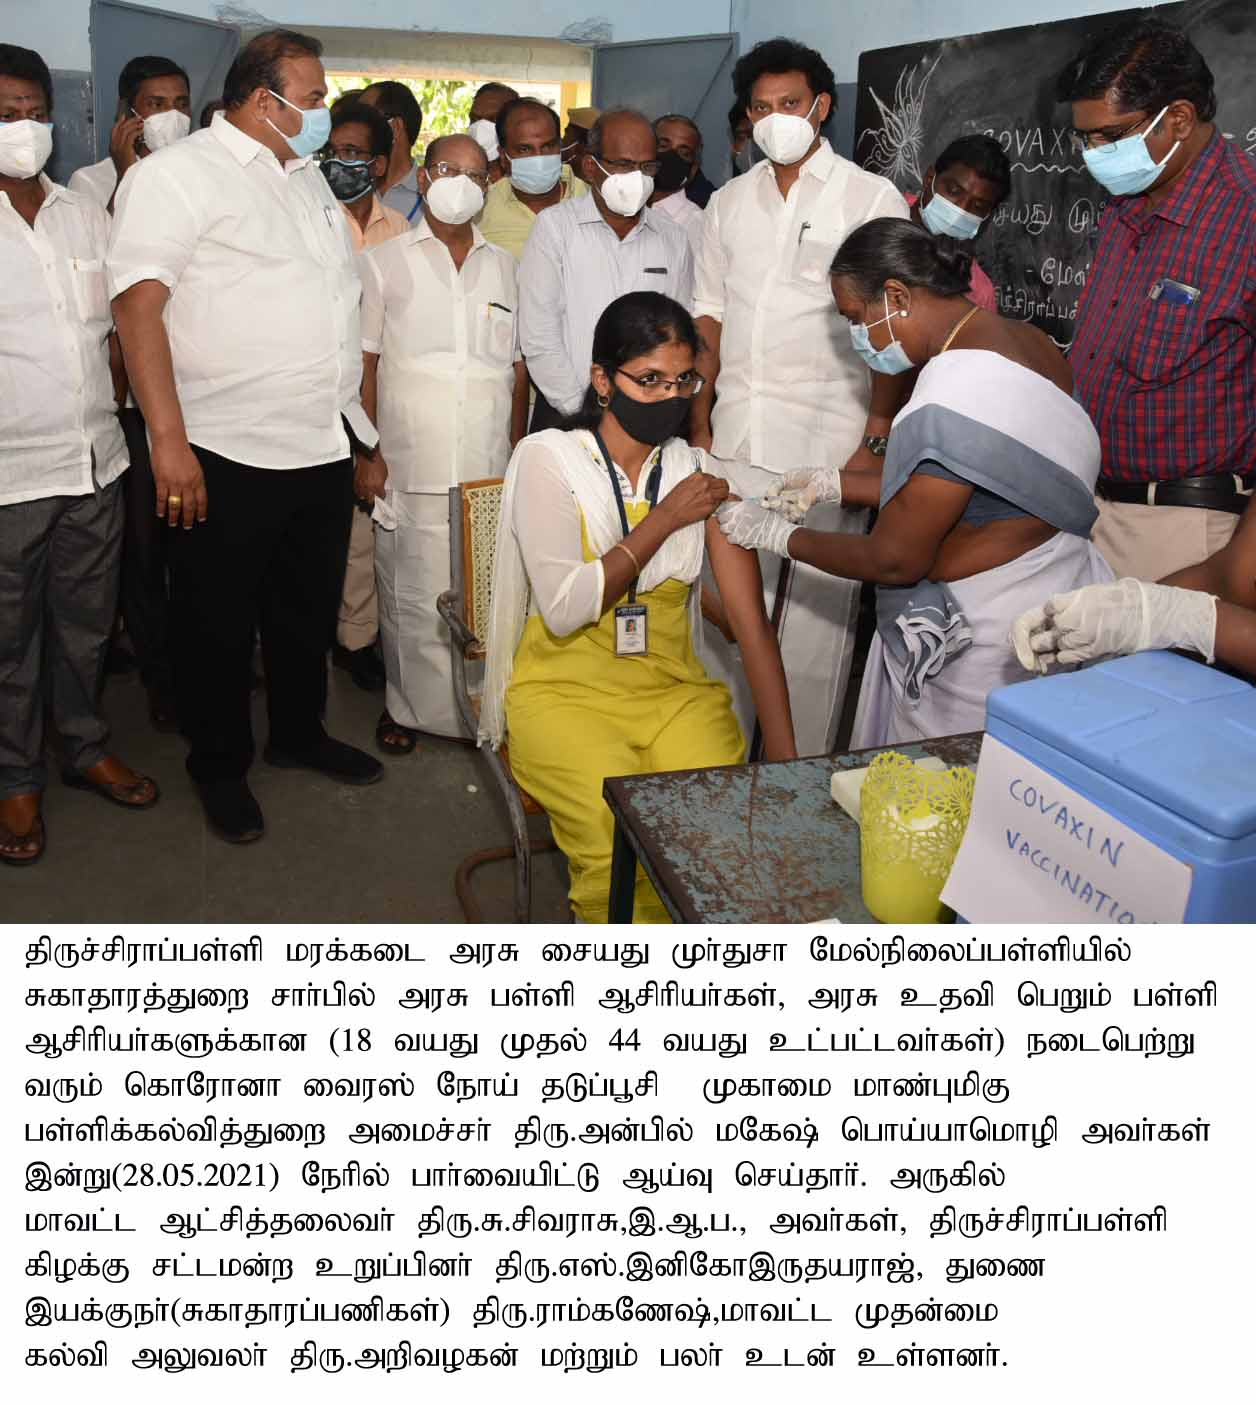 Hon'ble School Education Minister Inspected Covid Vaccination Camps on 28.05.2021